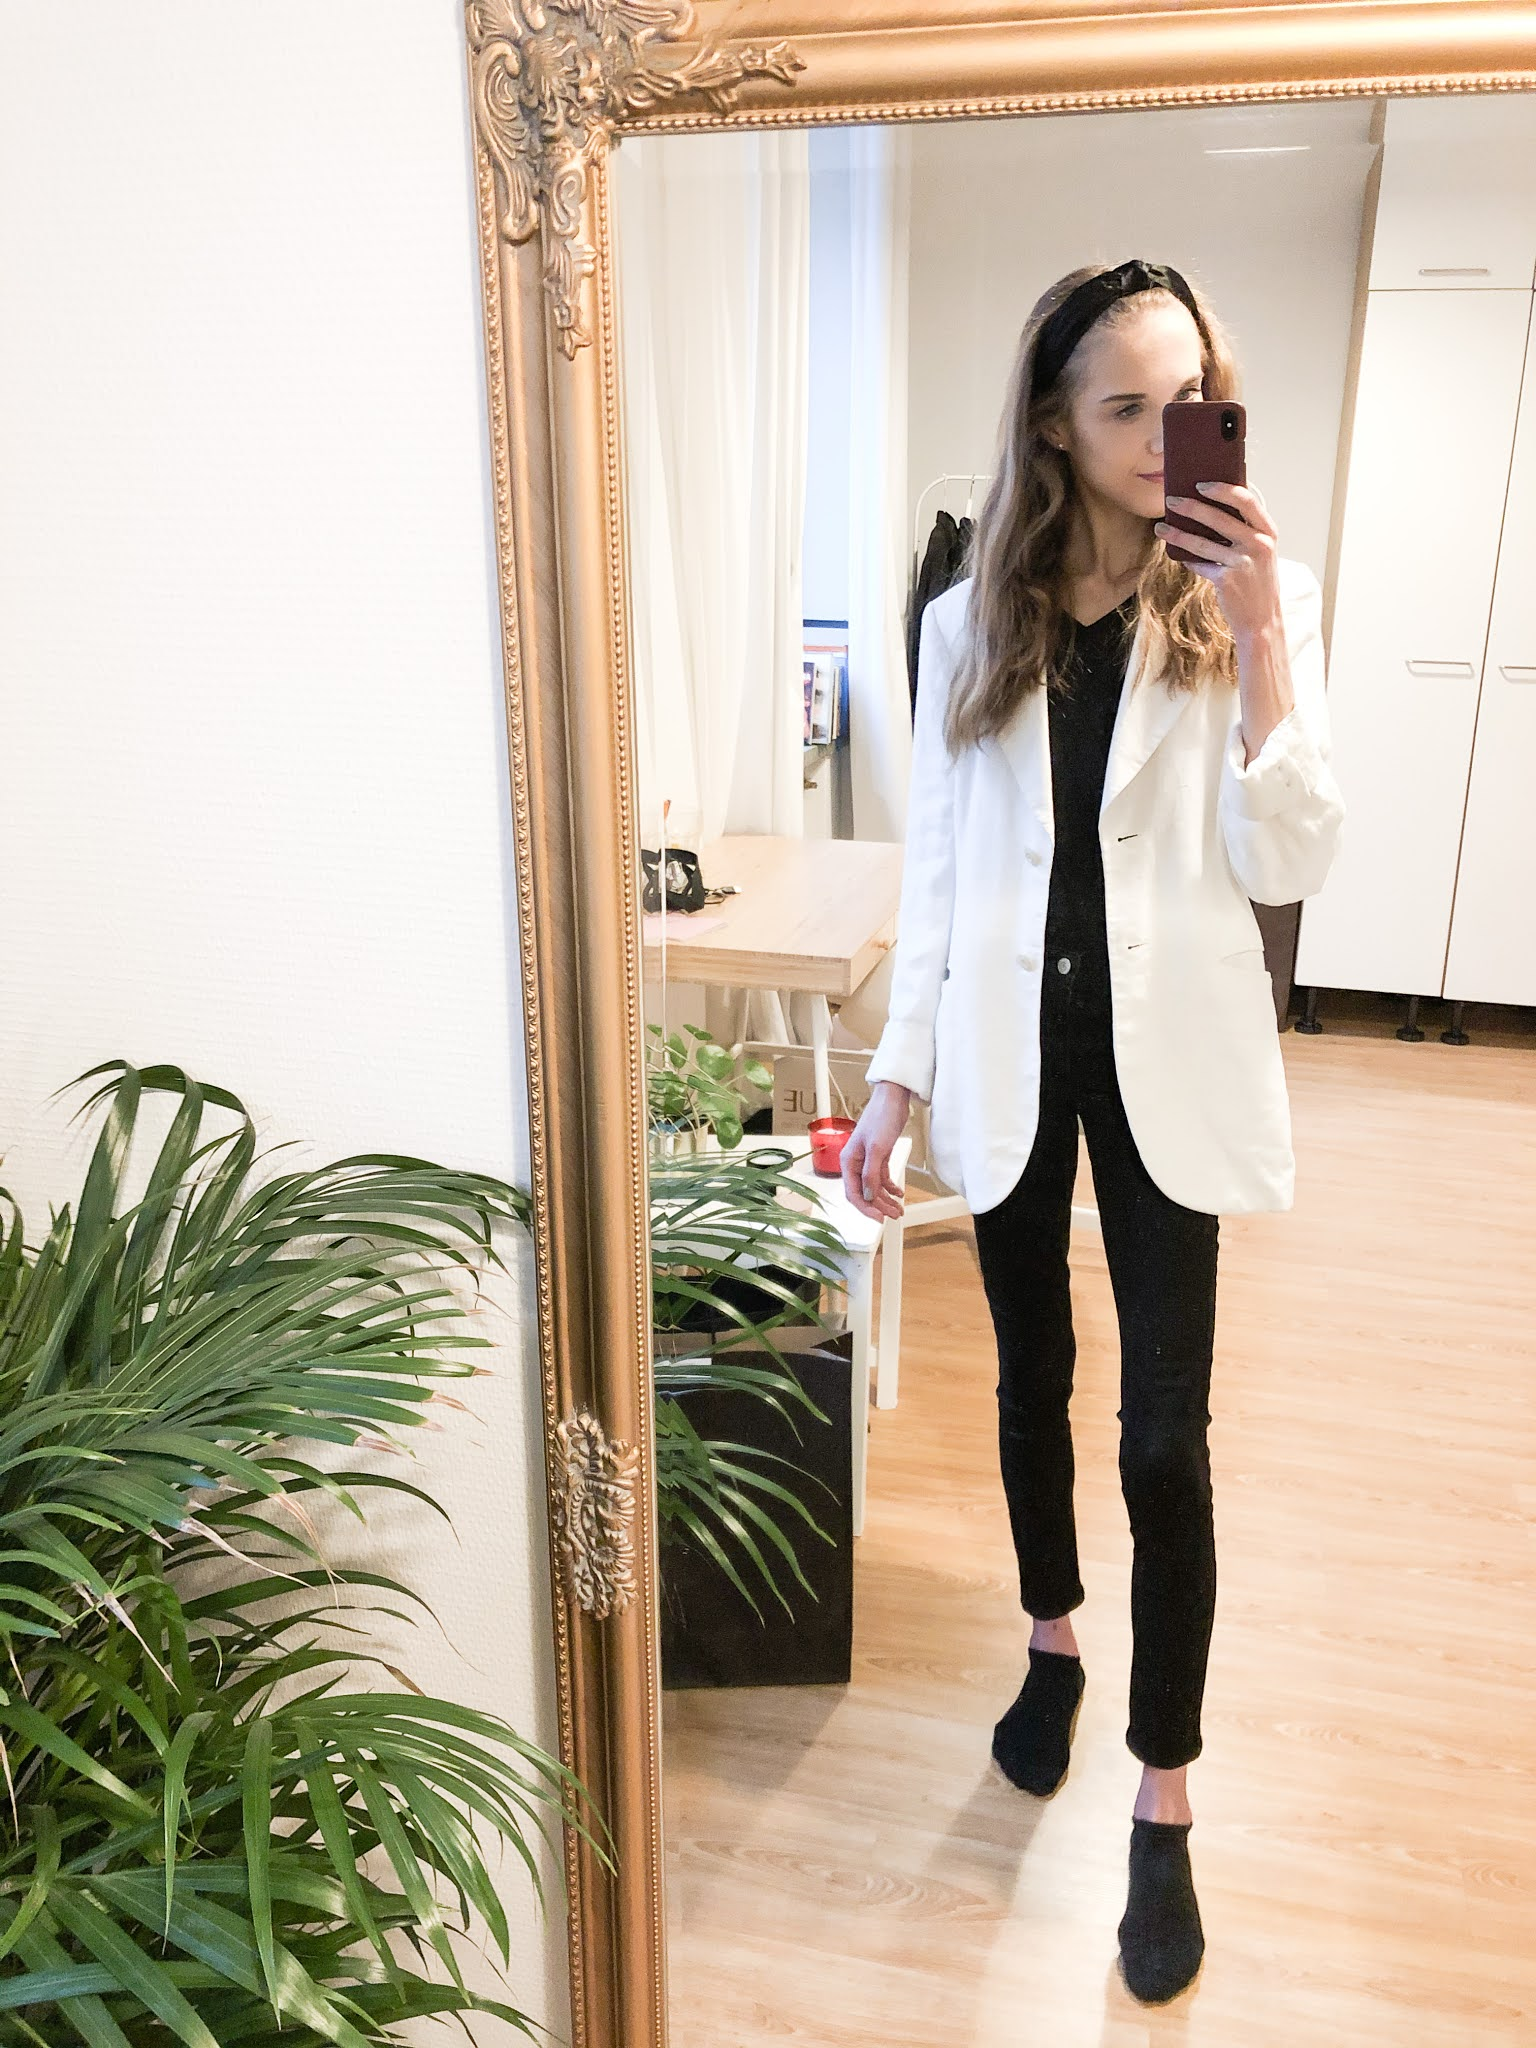 Mustavalkoinen asu // Black and white outfit